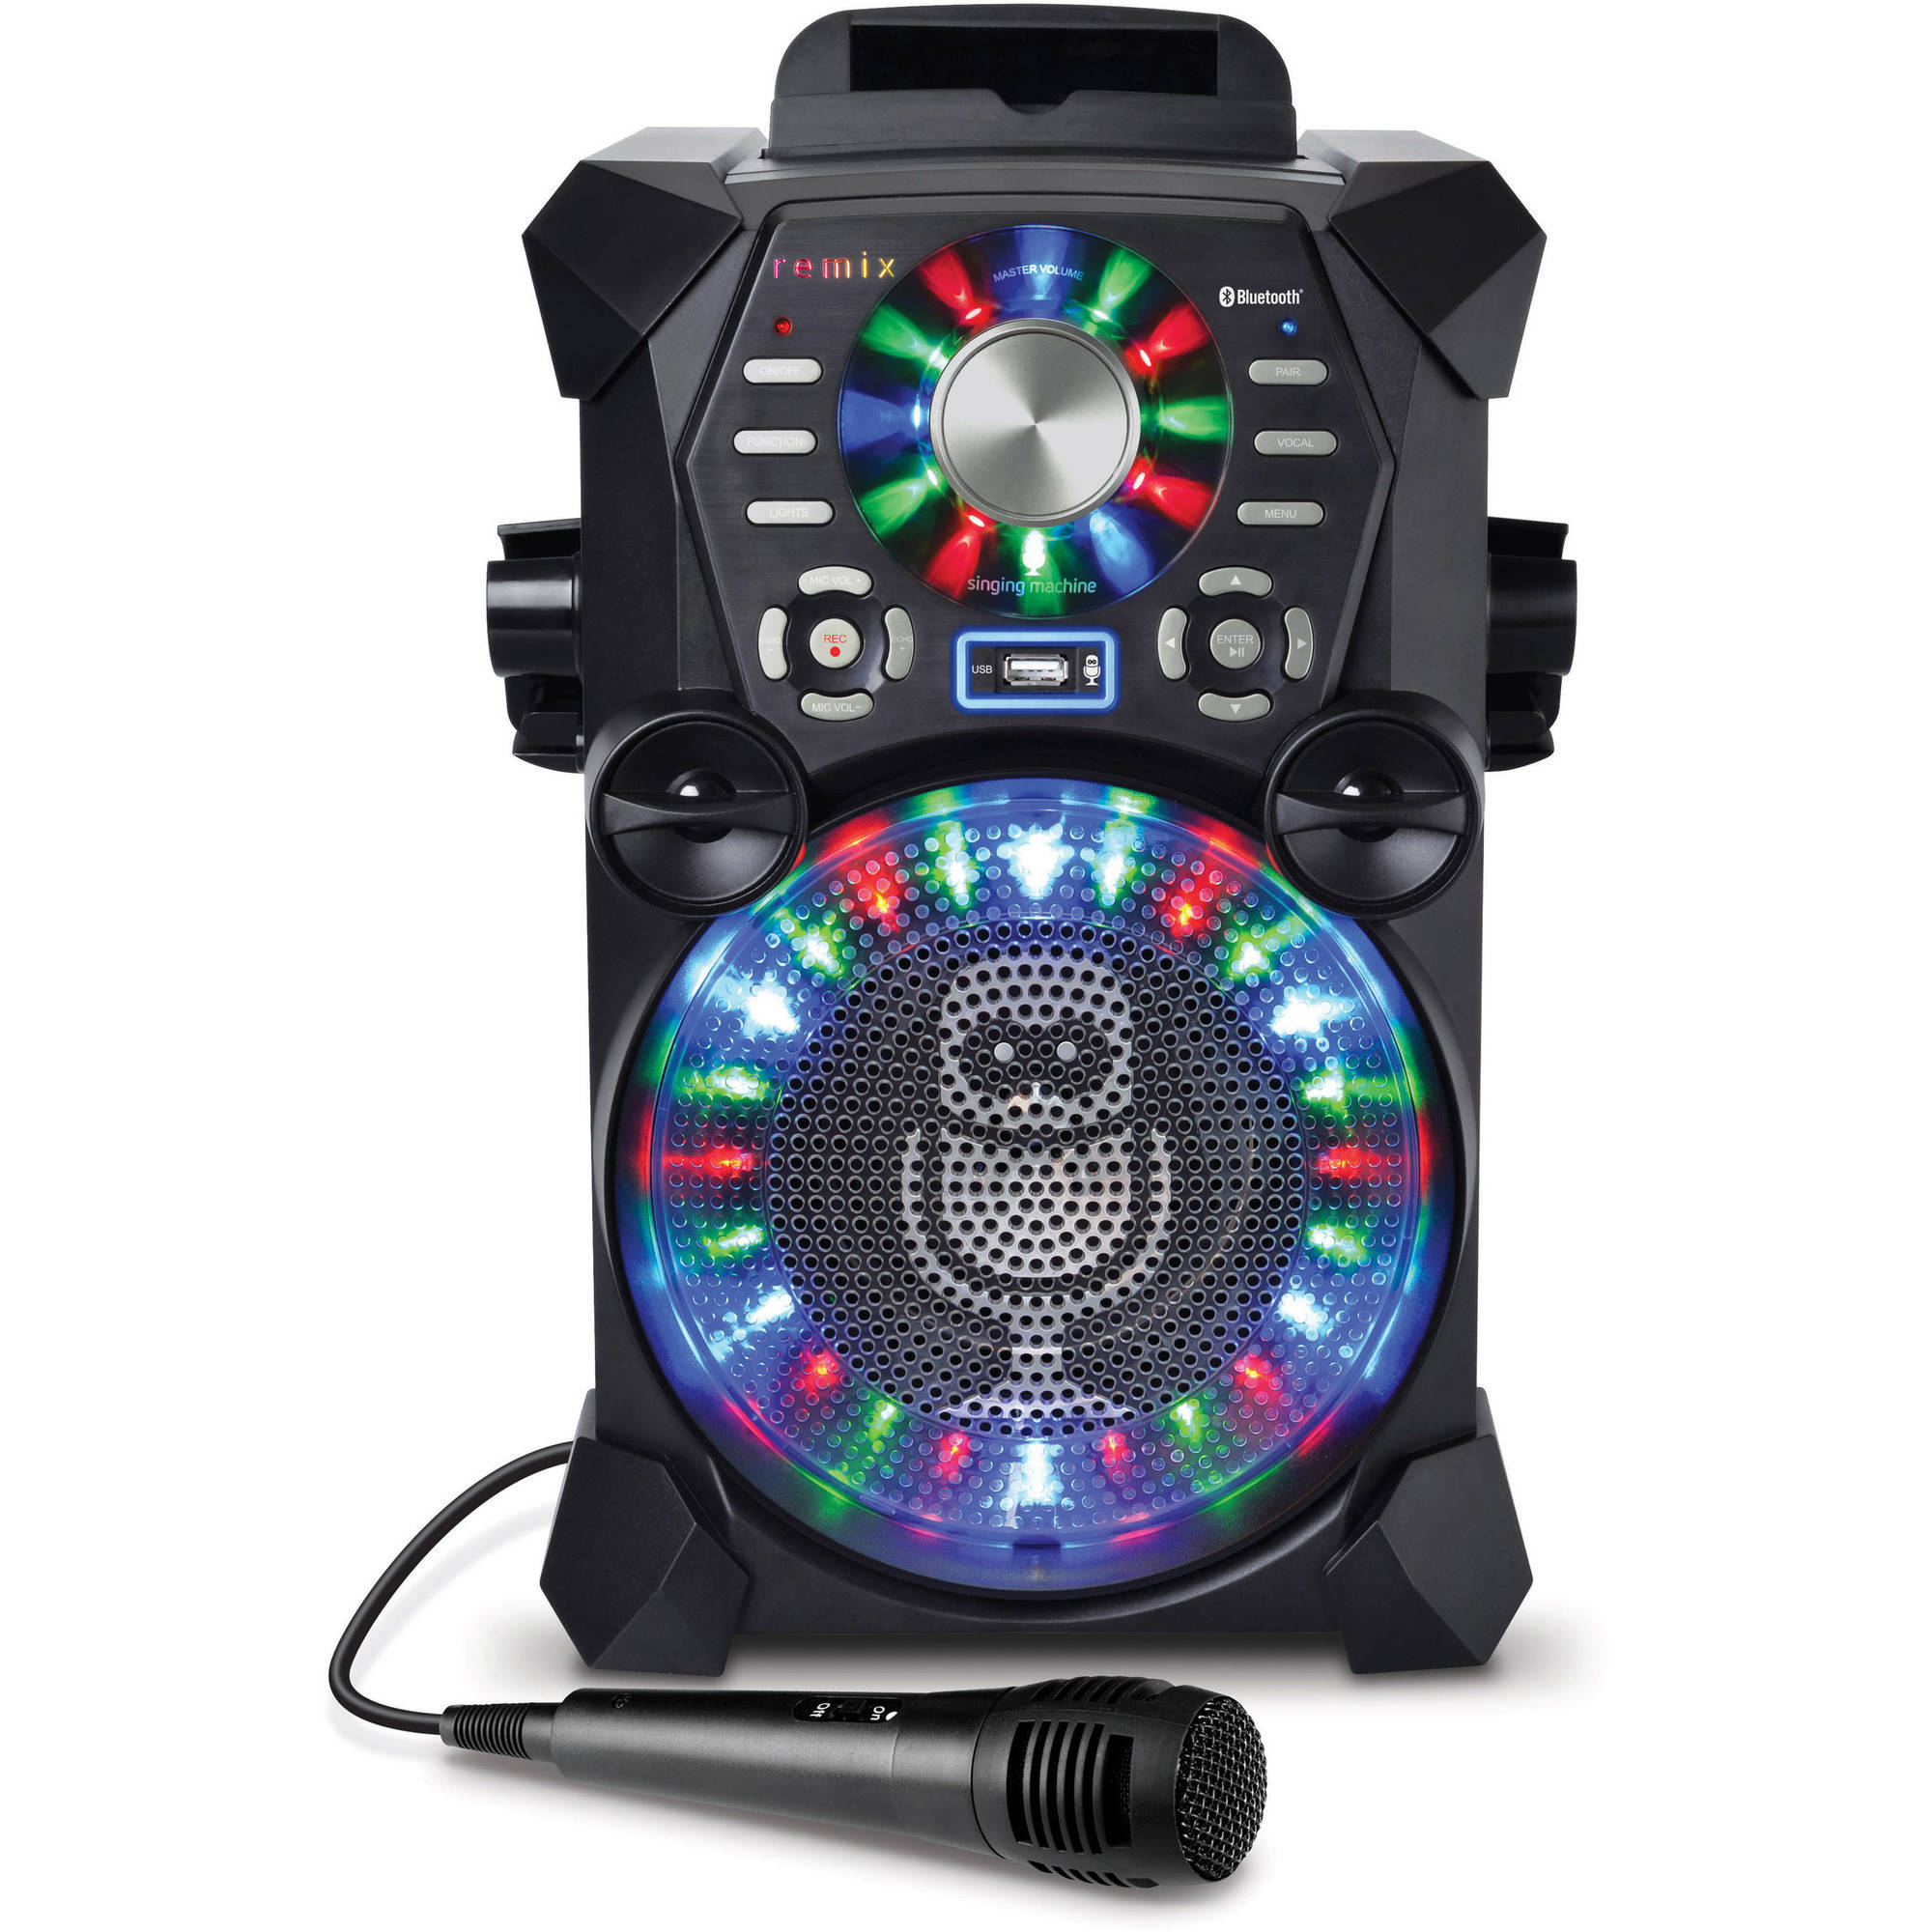 Singing Machine REMIX High-Definition Digital Karaoke System with Resting Tablet Cradle, Wired Microphone and LED Disco Lights